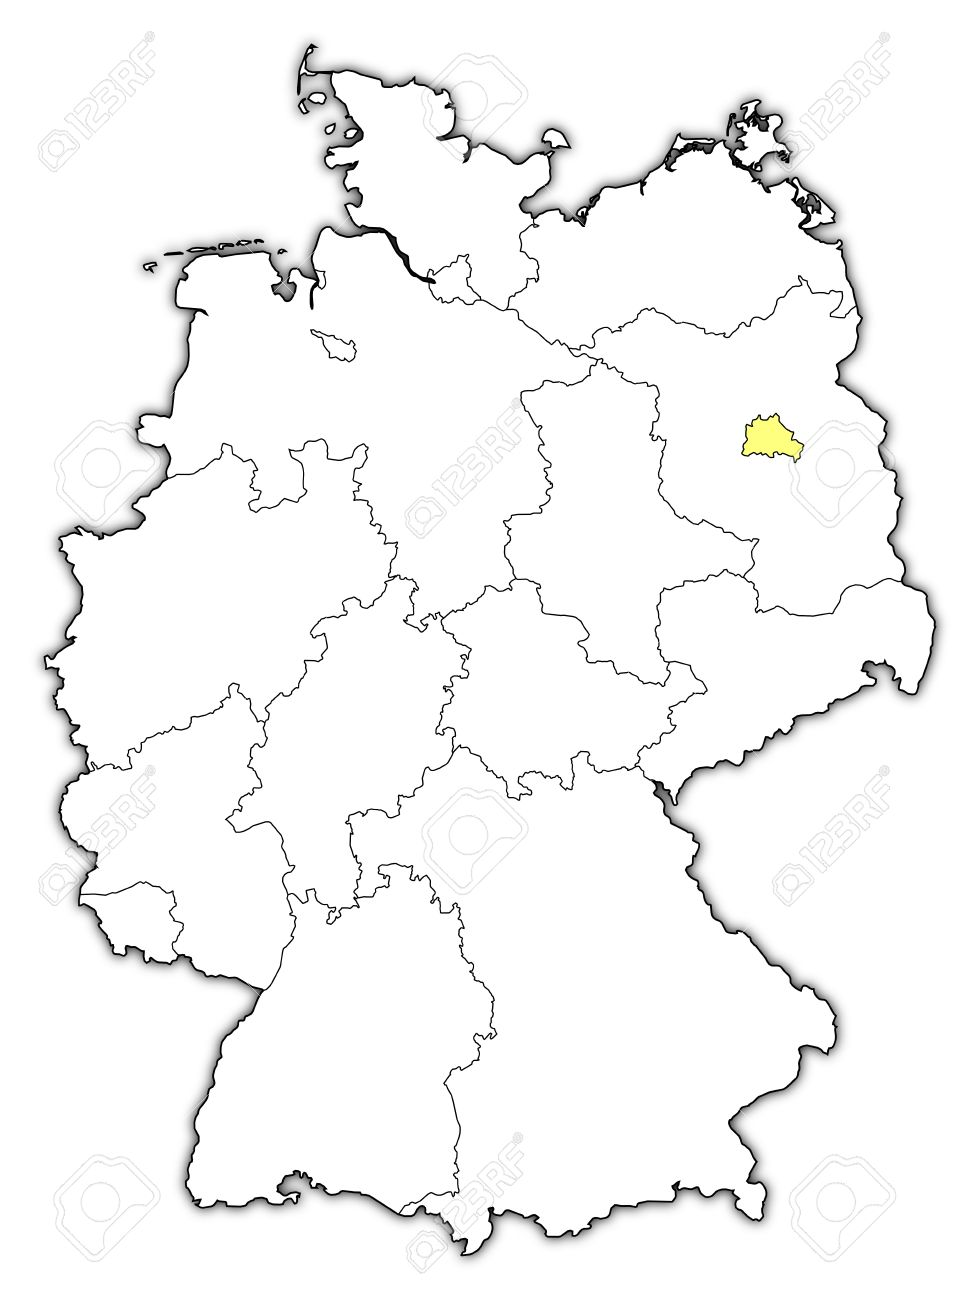 Political Map Of Germany With The Several States Where Berlin